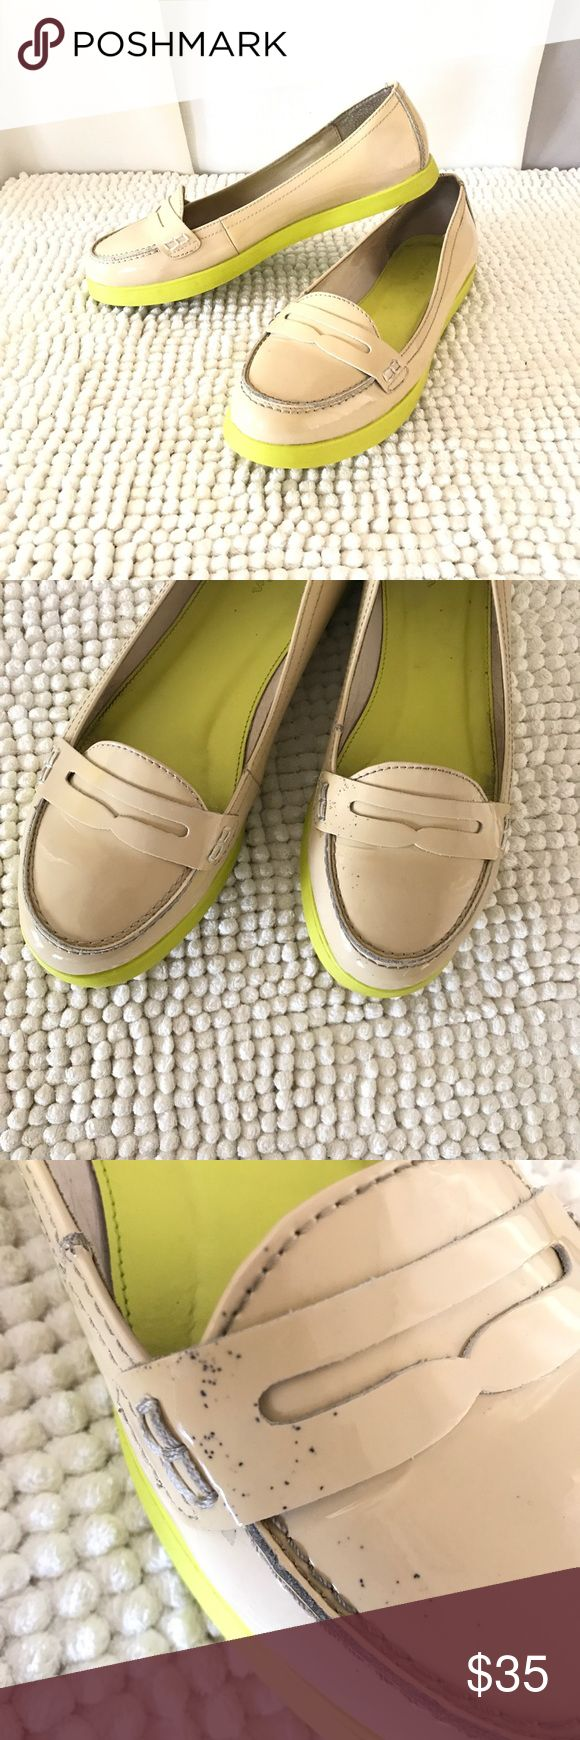 Boden nude cream neon yellow sole mocassins flats Super cute comfy shoes, classic with a neon twist! Nude top color and glossy finish. Overall good condition but one shoe has some tiny stains that are removable with the right product, size 39 9M Boden Shoes Flats & Loafers